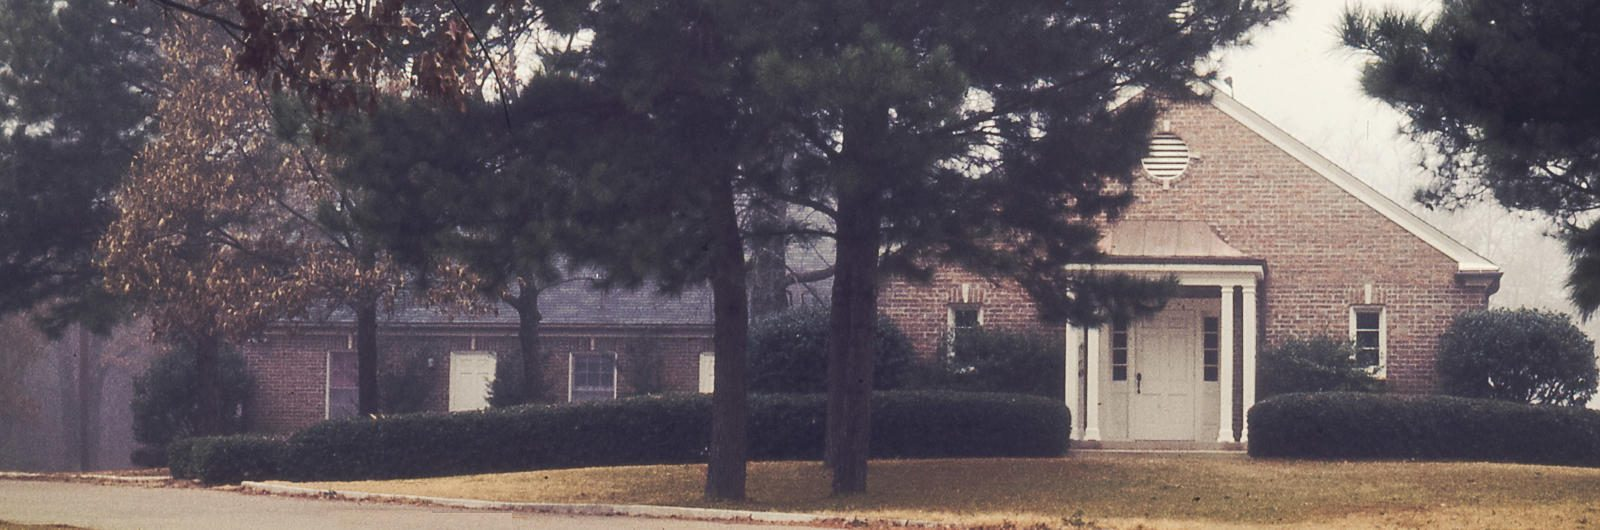 Original Old Jacksonville Campus